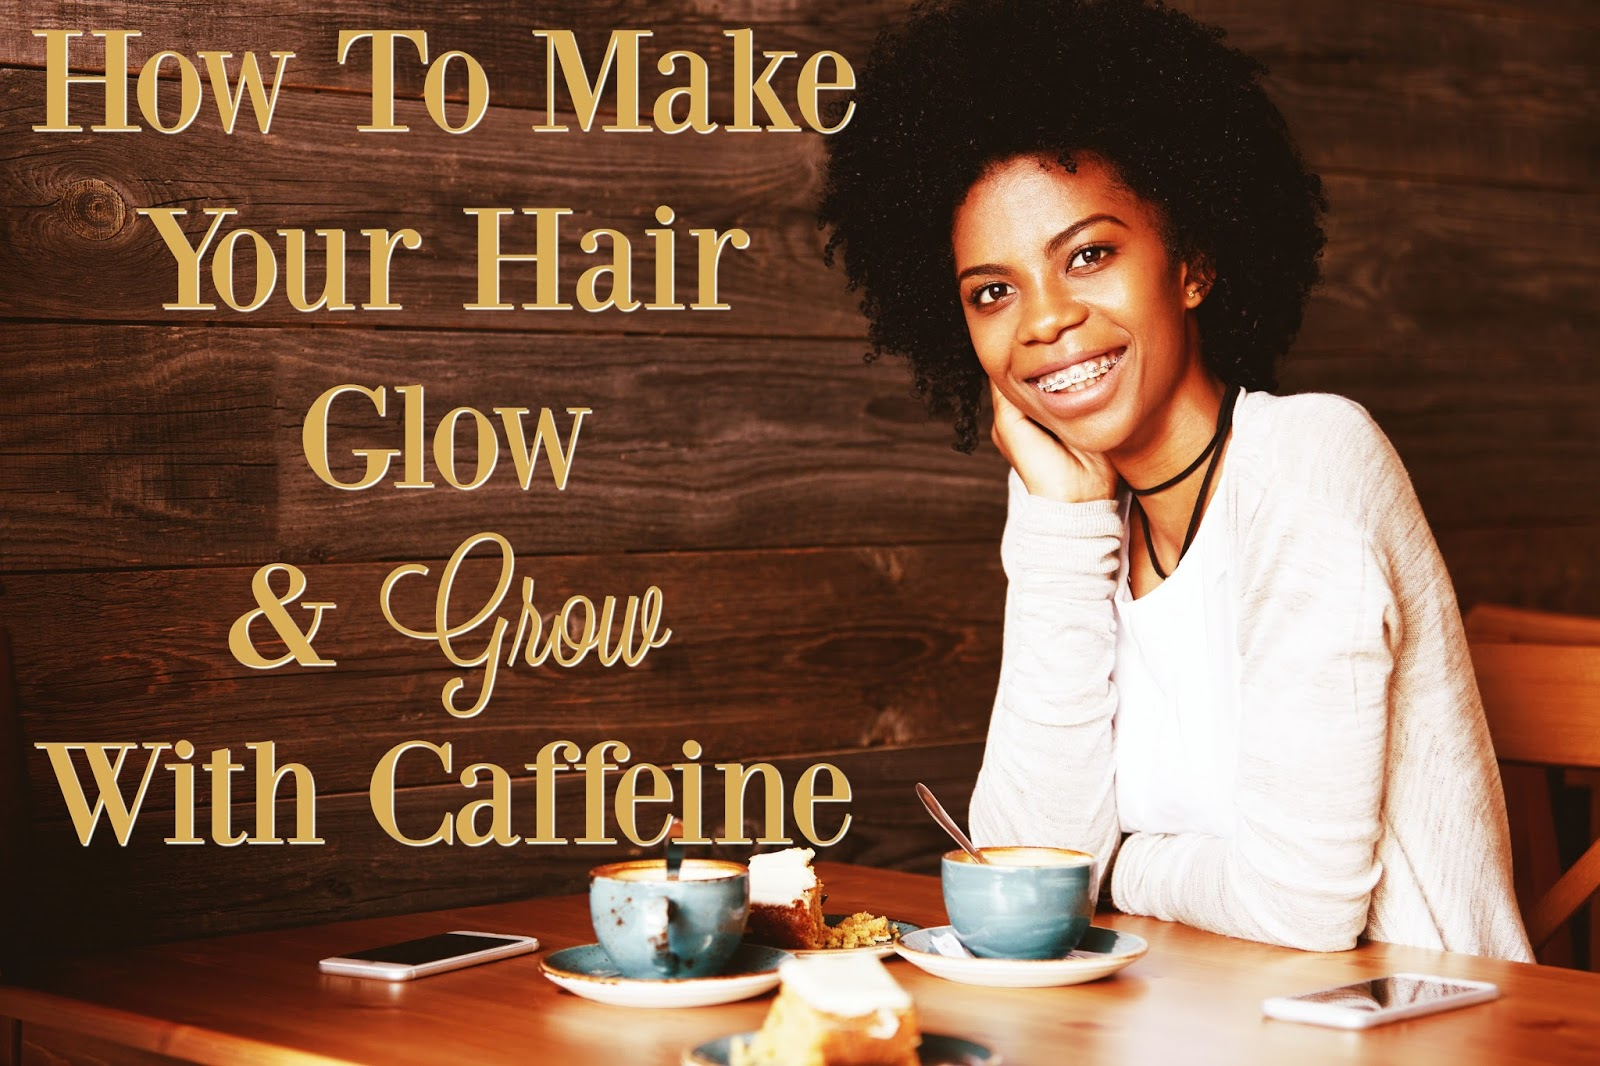 How To Make Your Hair Glow & Grow With Caffeine